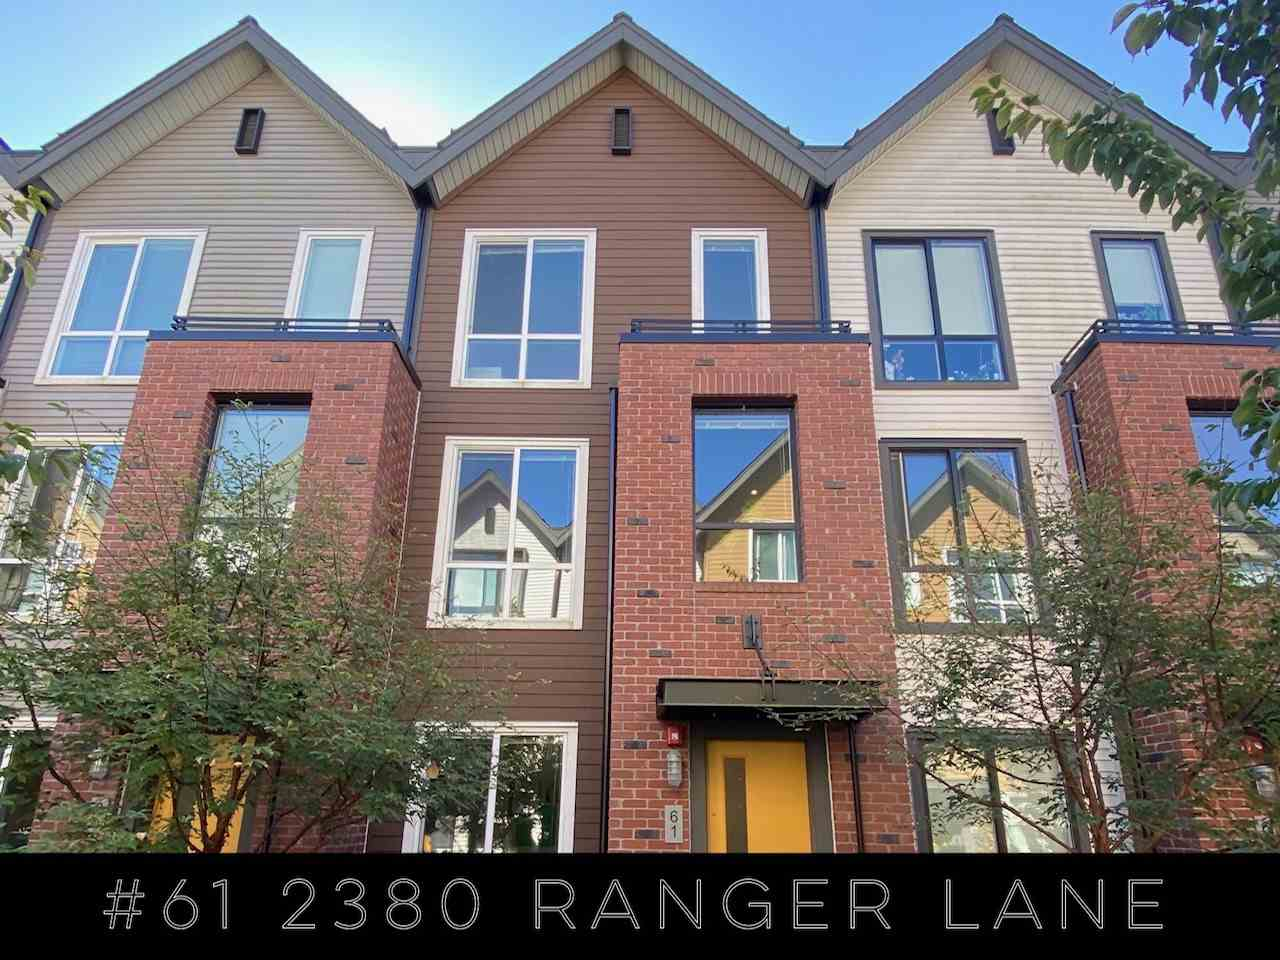 61 2380 RANGER LANE - Riverwood Townhouse for sale, 2 Bedrooms (R2498749) - #1